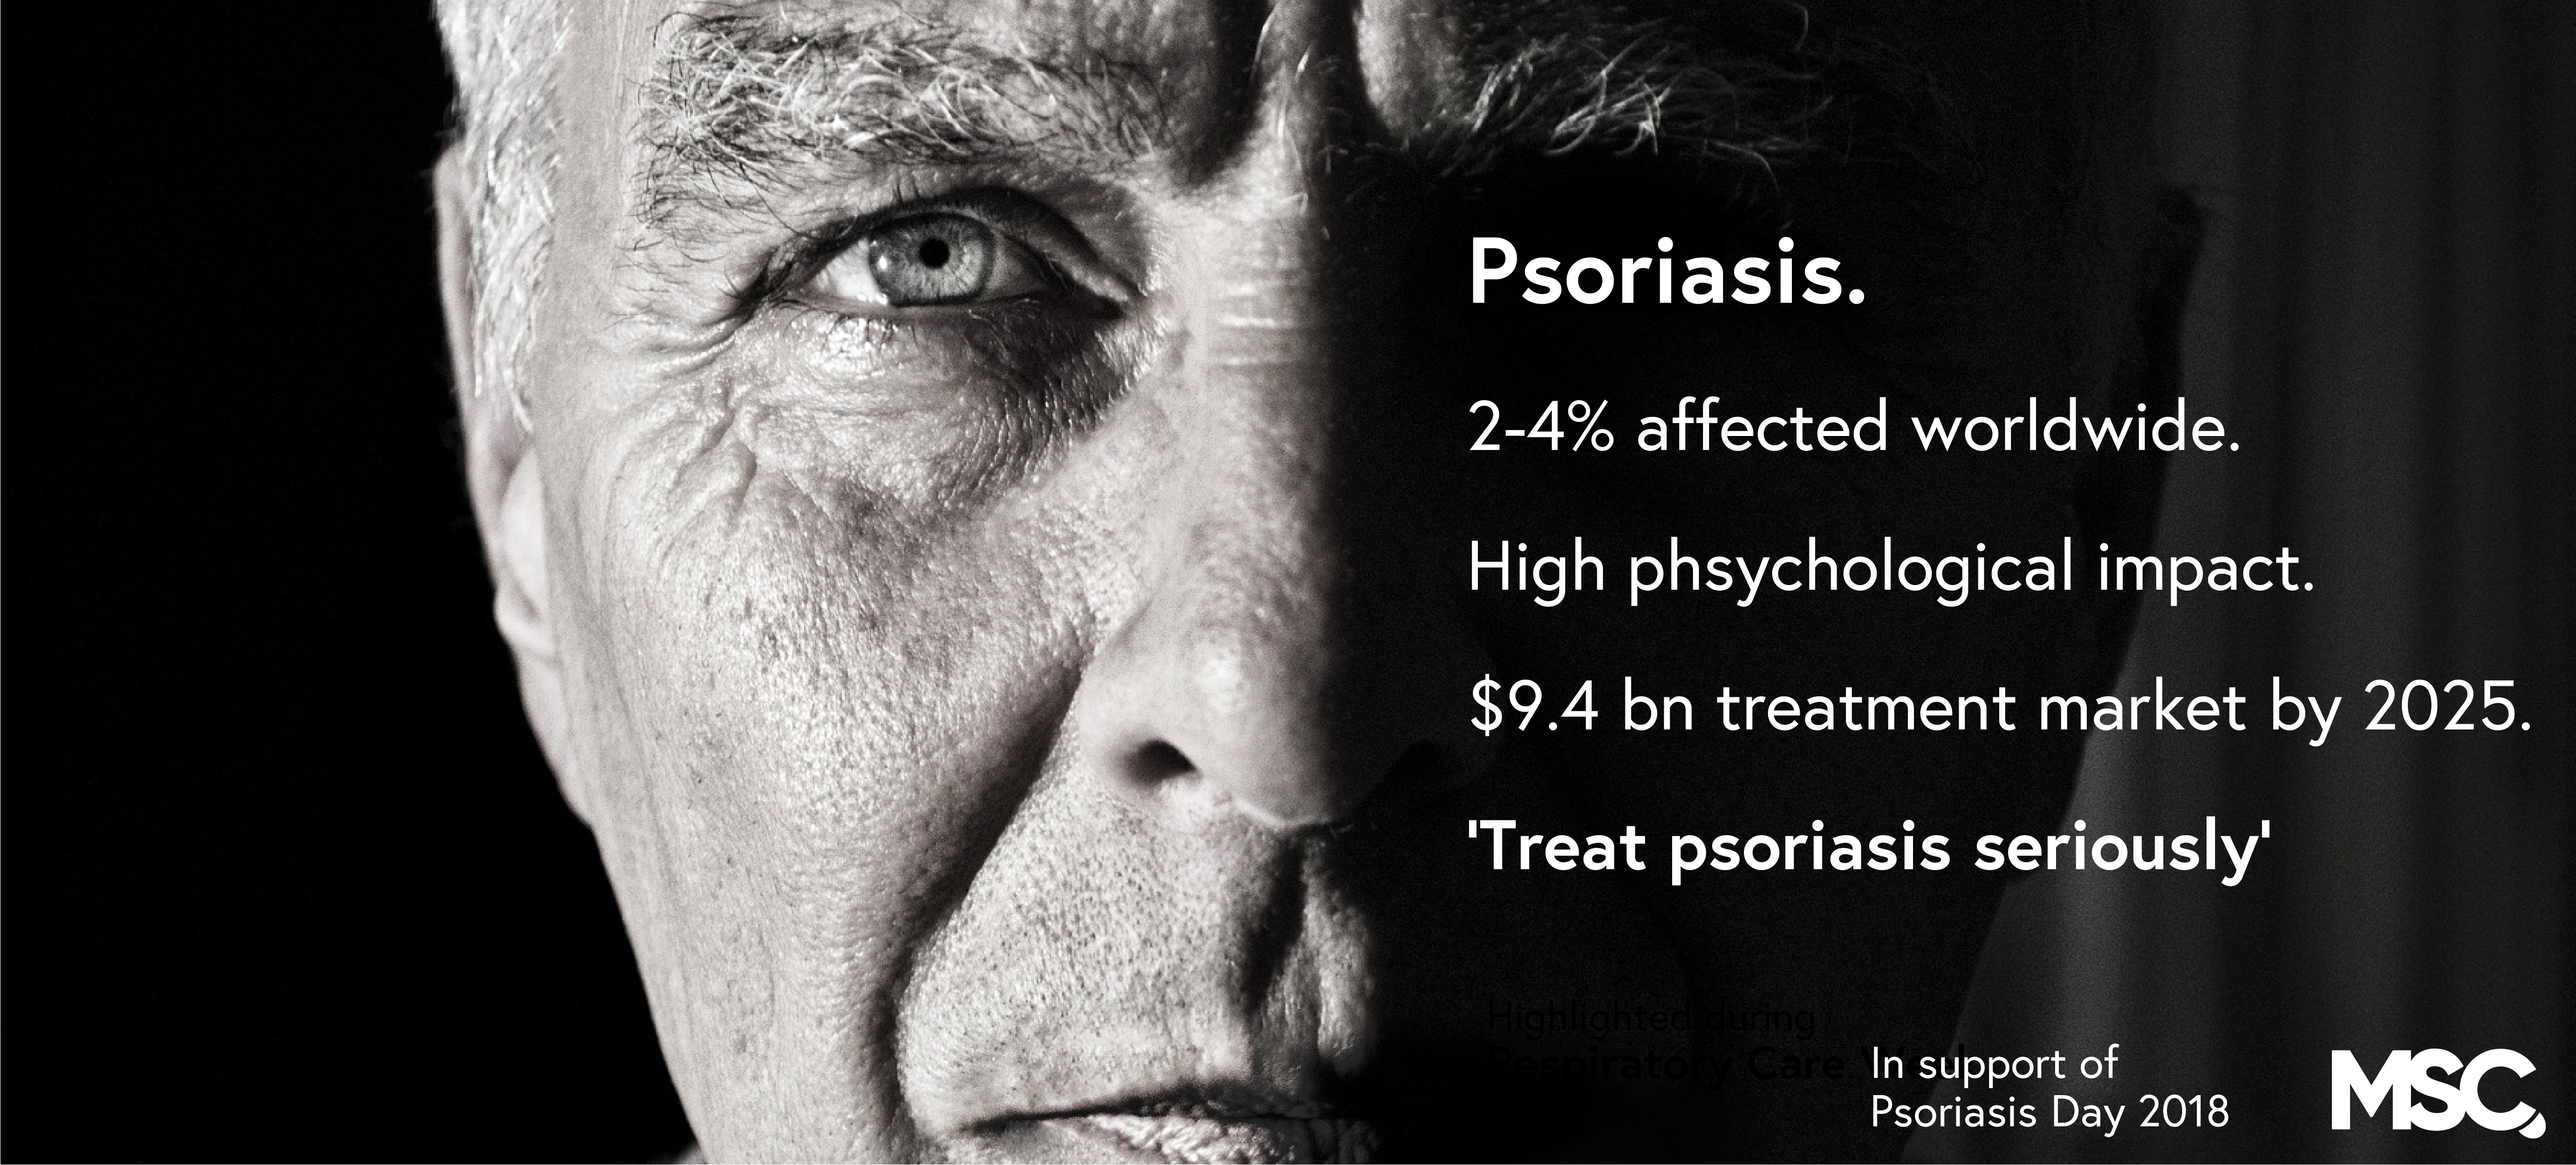 World Psoriasis Day: It's time to treat psoriasis seriously